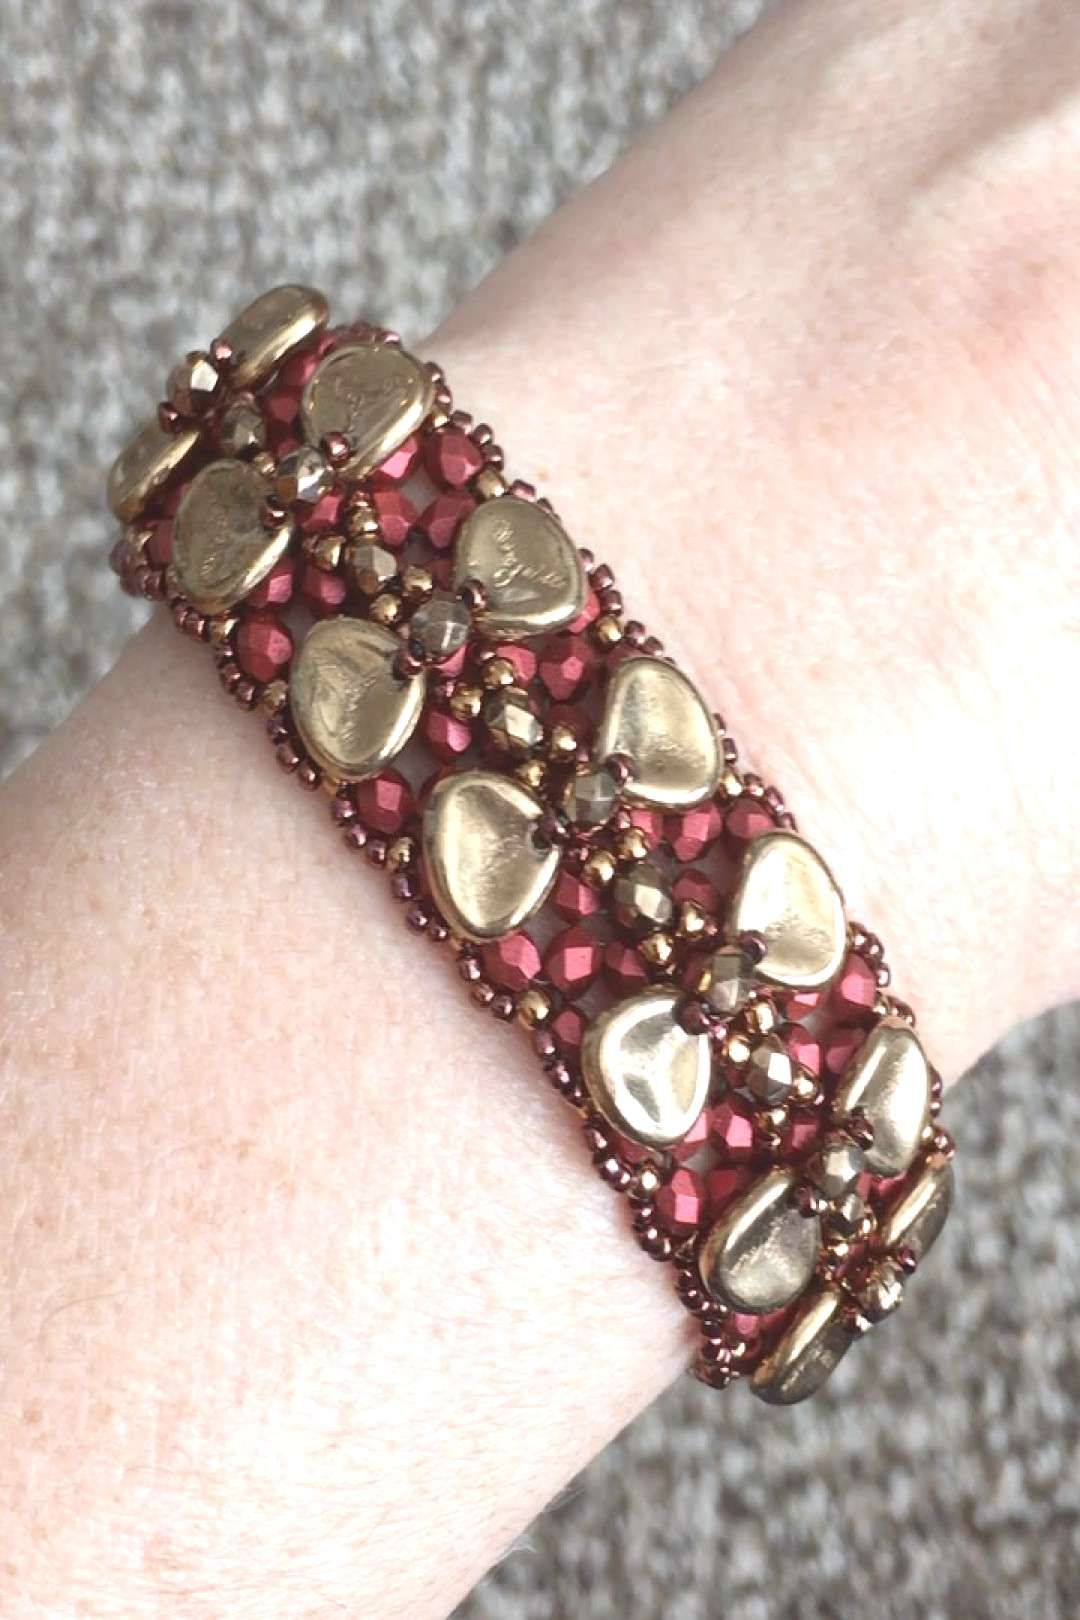 Here is a closeup of my new Tuxedo Bracelet in red and gold. All